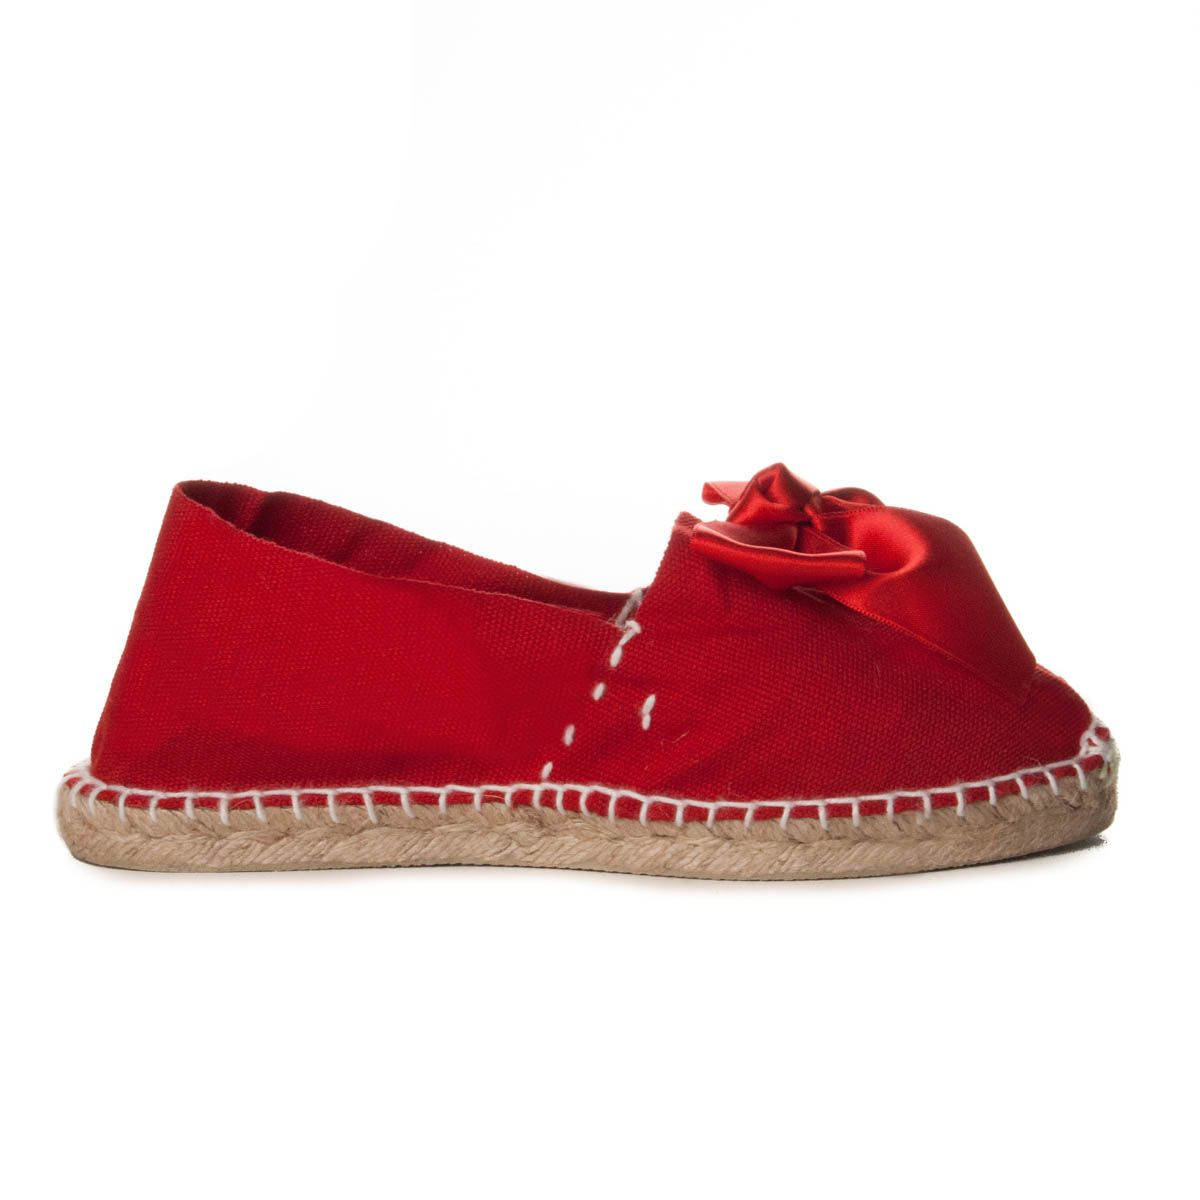 Maria Graor Bow Front Espadrille in Red